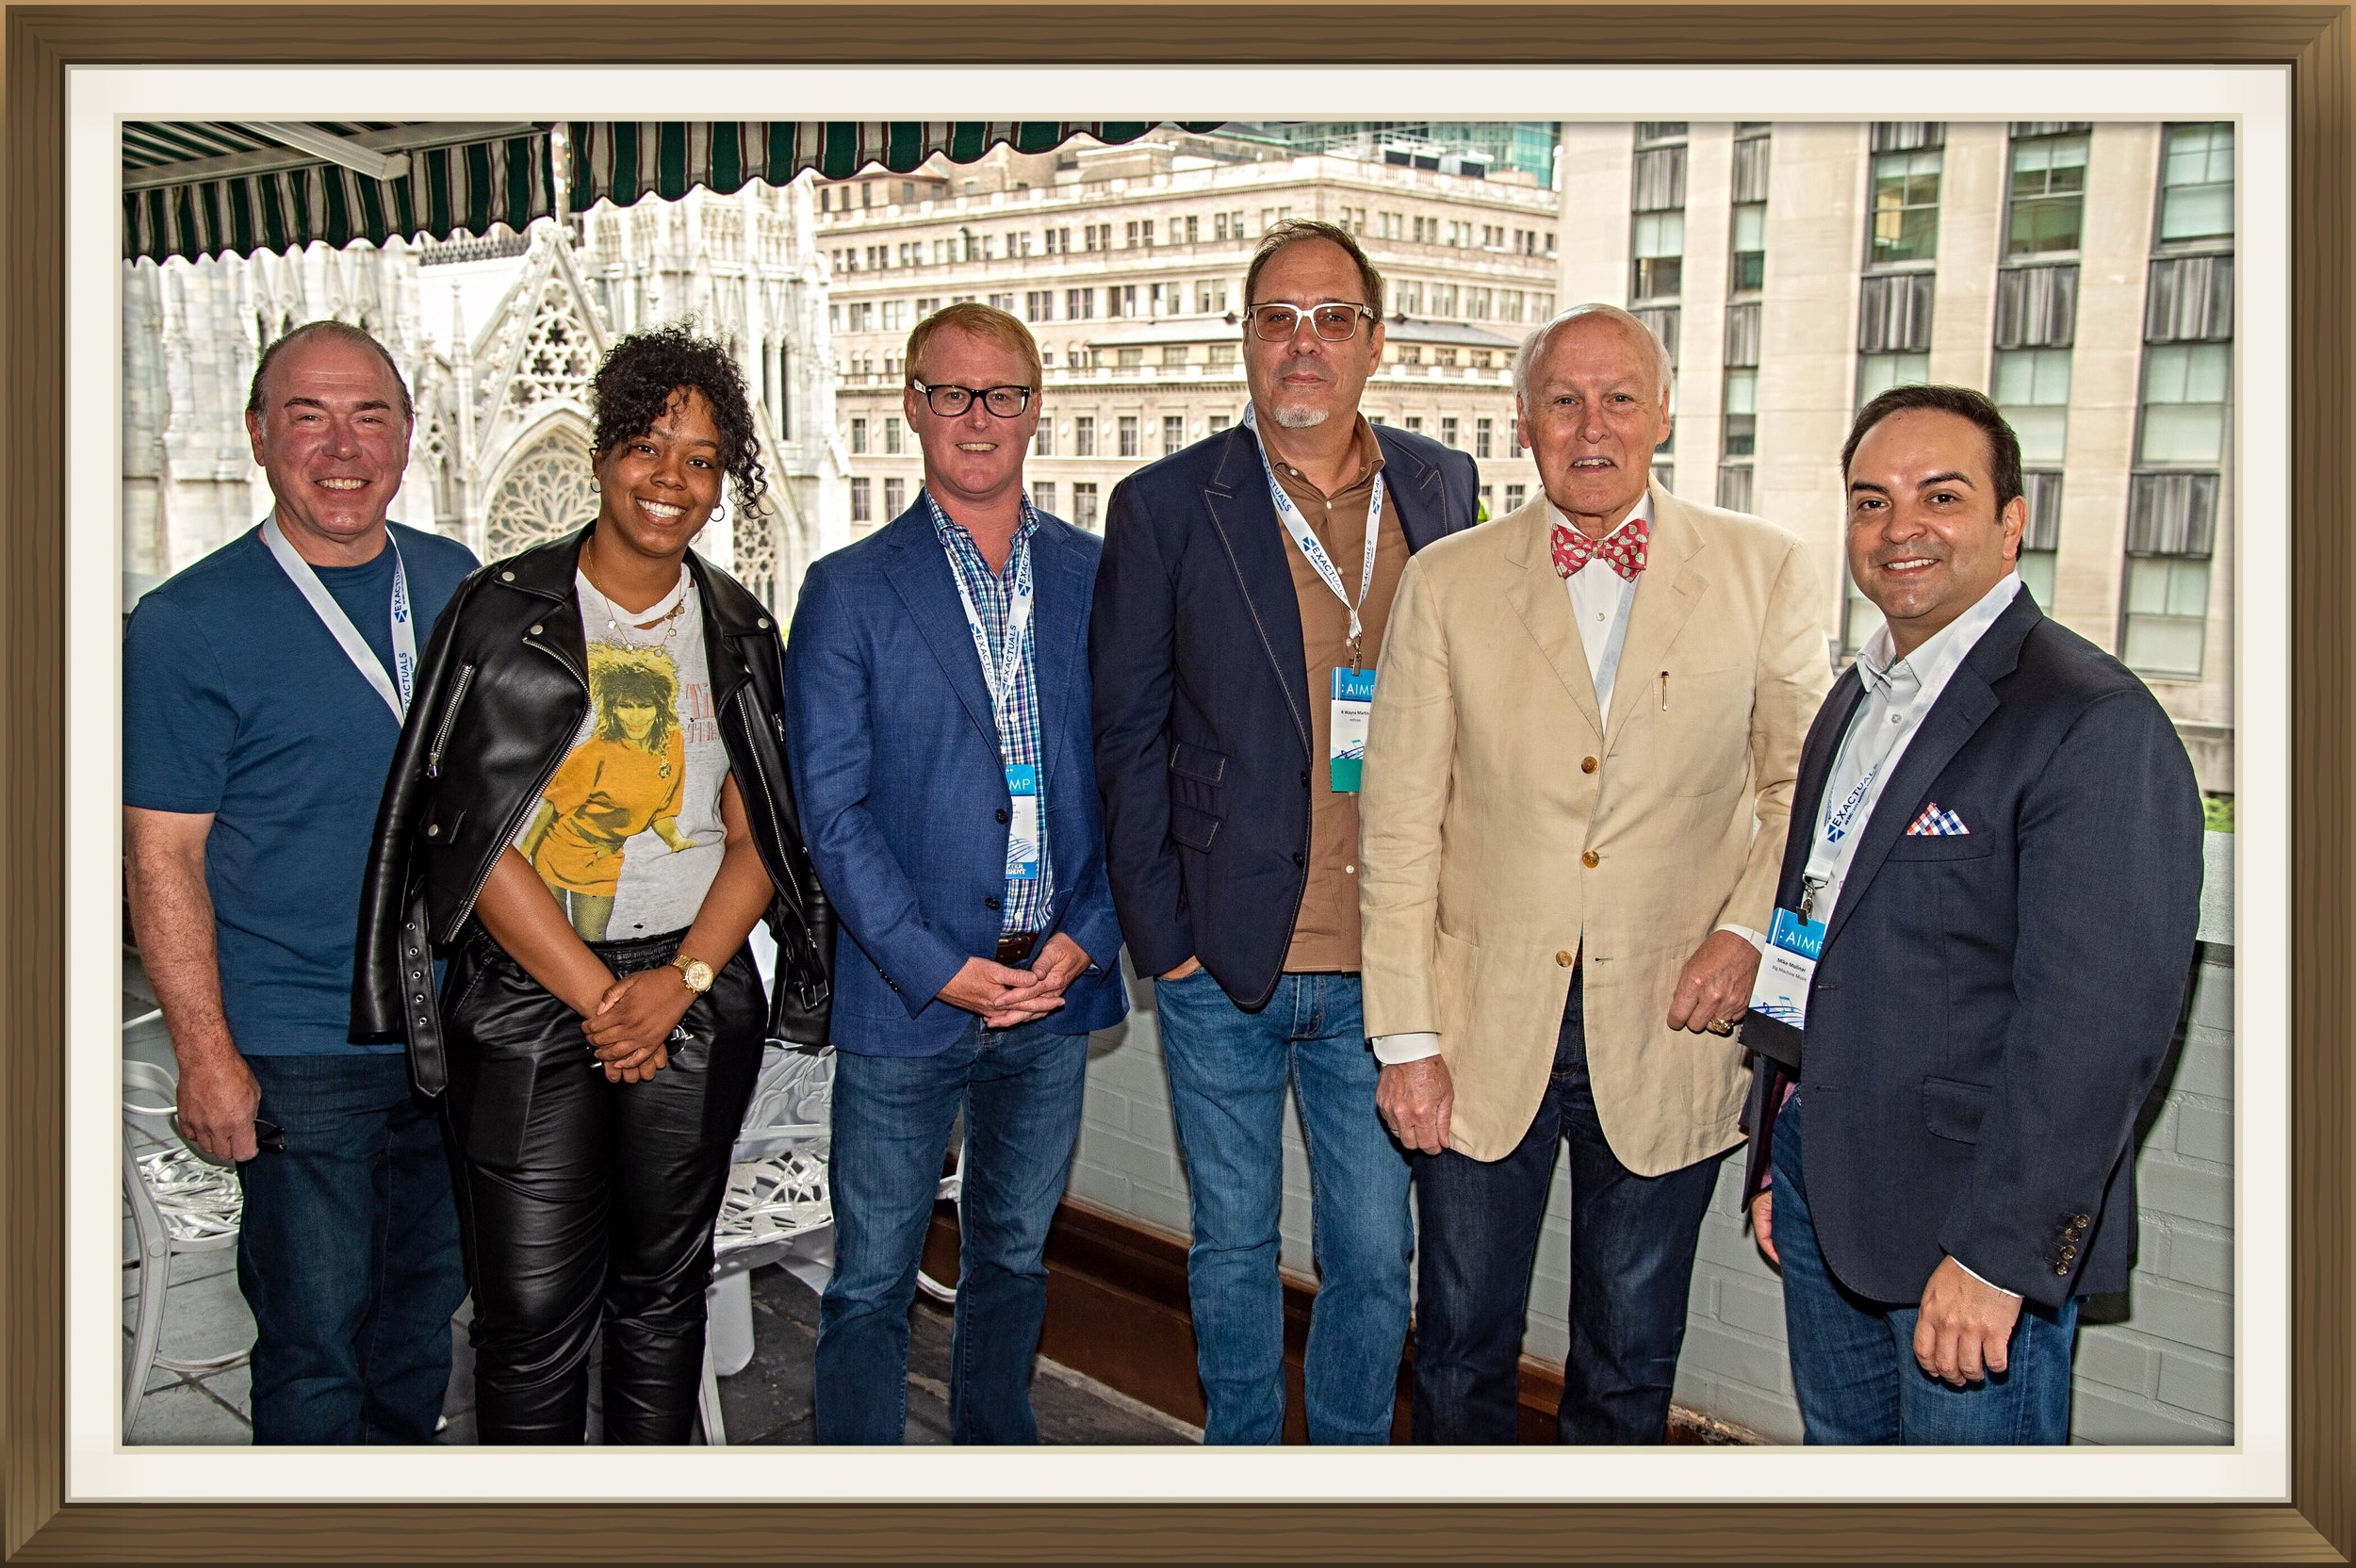 June 11, 2019 New York New York • The Association of Independent Music Publishers (AIMP) Indie Music Publishing Summit • Songwriter A&R 101 Panel  Speakers Pictured From Left To Right: Mark Brown, Vice President and General Manager, Round Hill Music • Latoya Lee, Vice President A&R, Atlas Music Group • John Ozier, AIMP Nashville President • R. Wayne Martin, Founder and Principal, mthree | martin music management (Moderator) • Bob Donnelly, Counsel, Fox Rothschild LLP • Mike Molinar, General Manager, Big Machine Music • Photo Credit: Larry Busacca